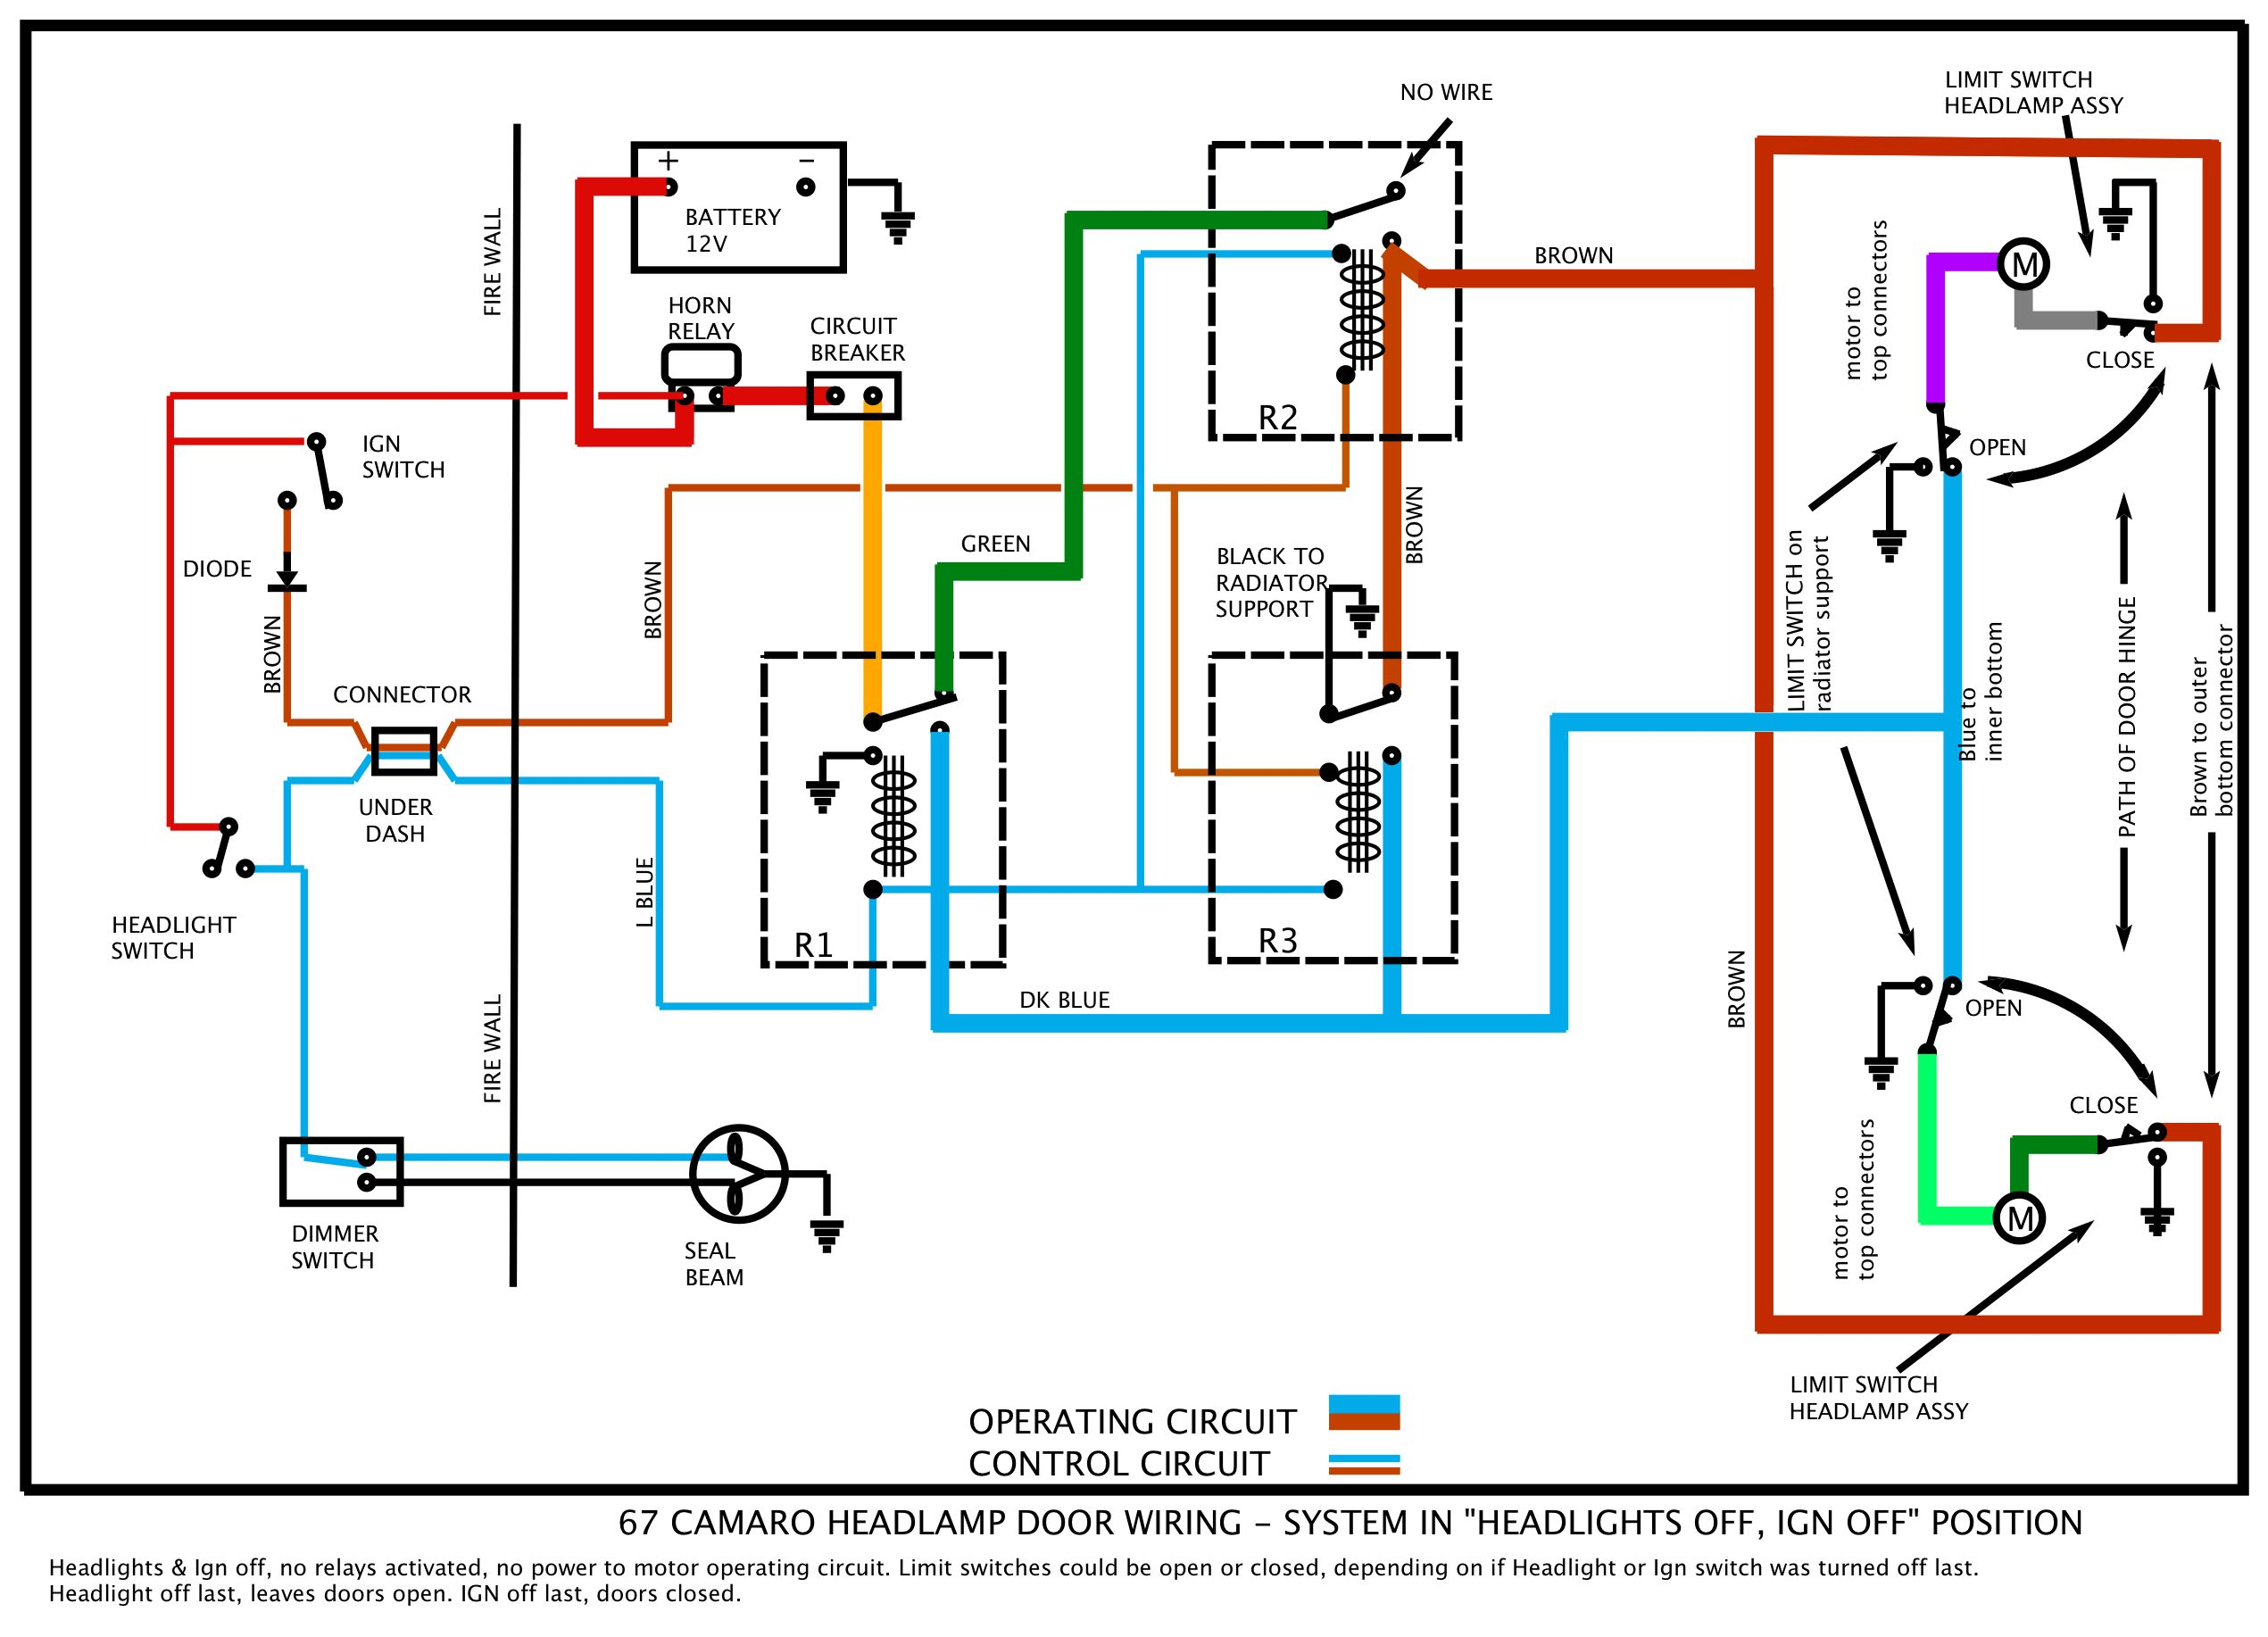 DIAGRAM] 2011 Camaro Headlight Wiring Diagram FULL Version HD Quality Wiring  Diagram - REACTIONFUER.MAI-LIE.FRreactionfuer.mai-lie.fr